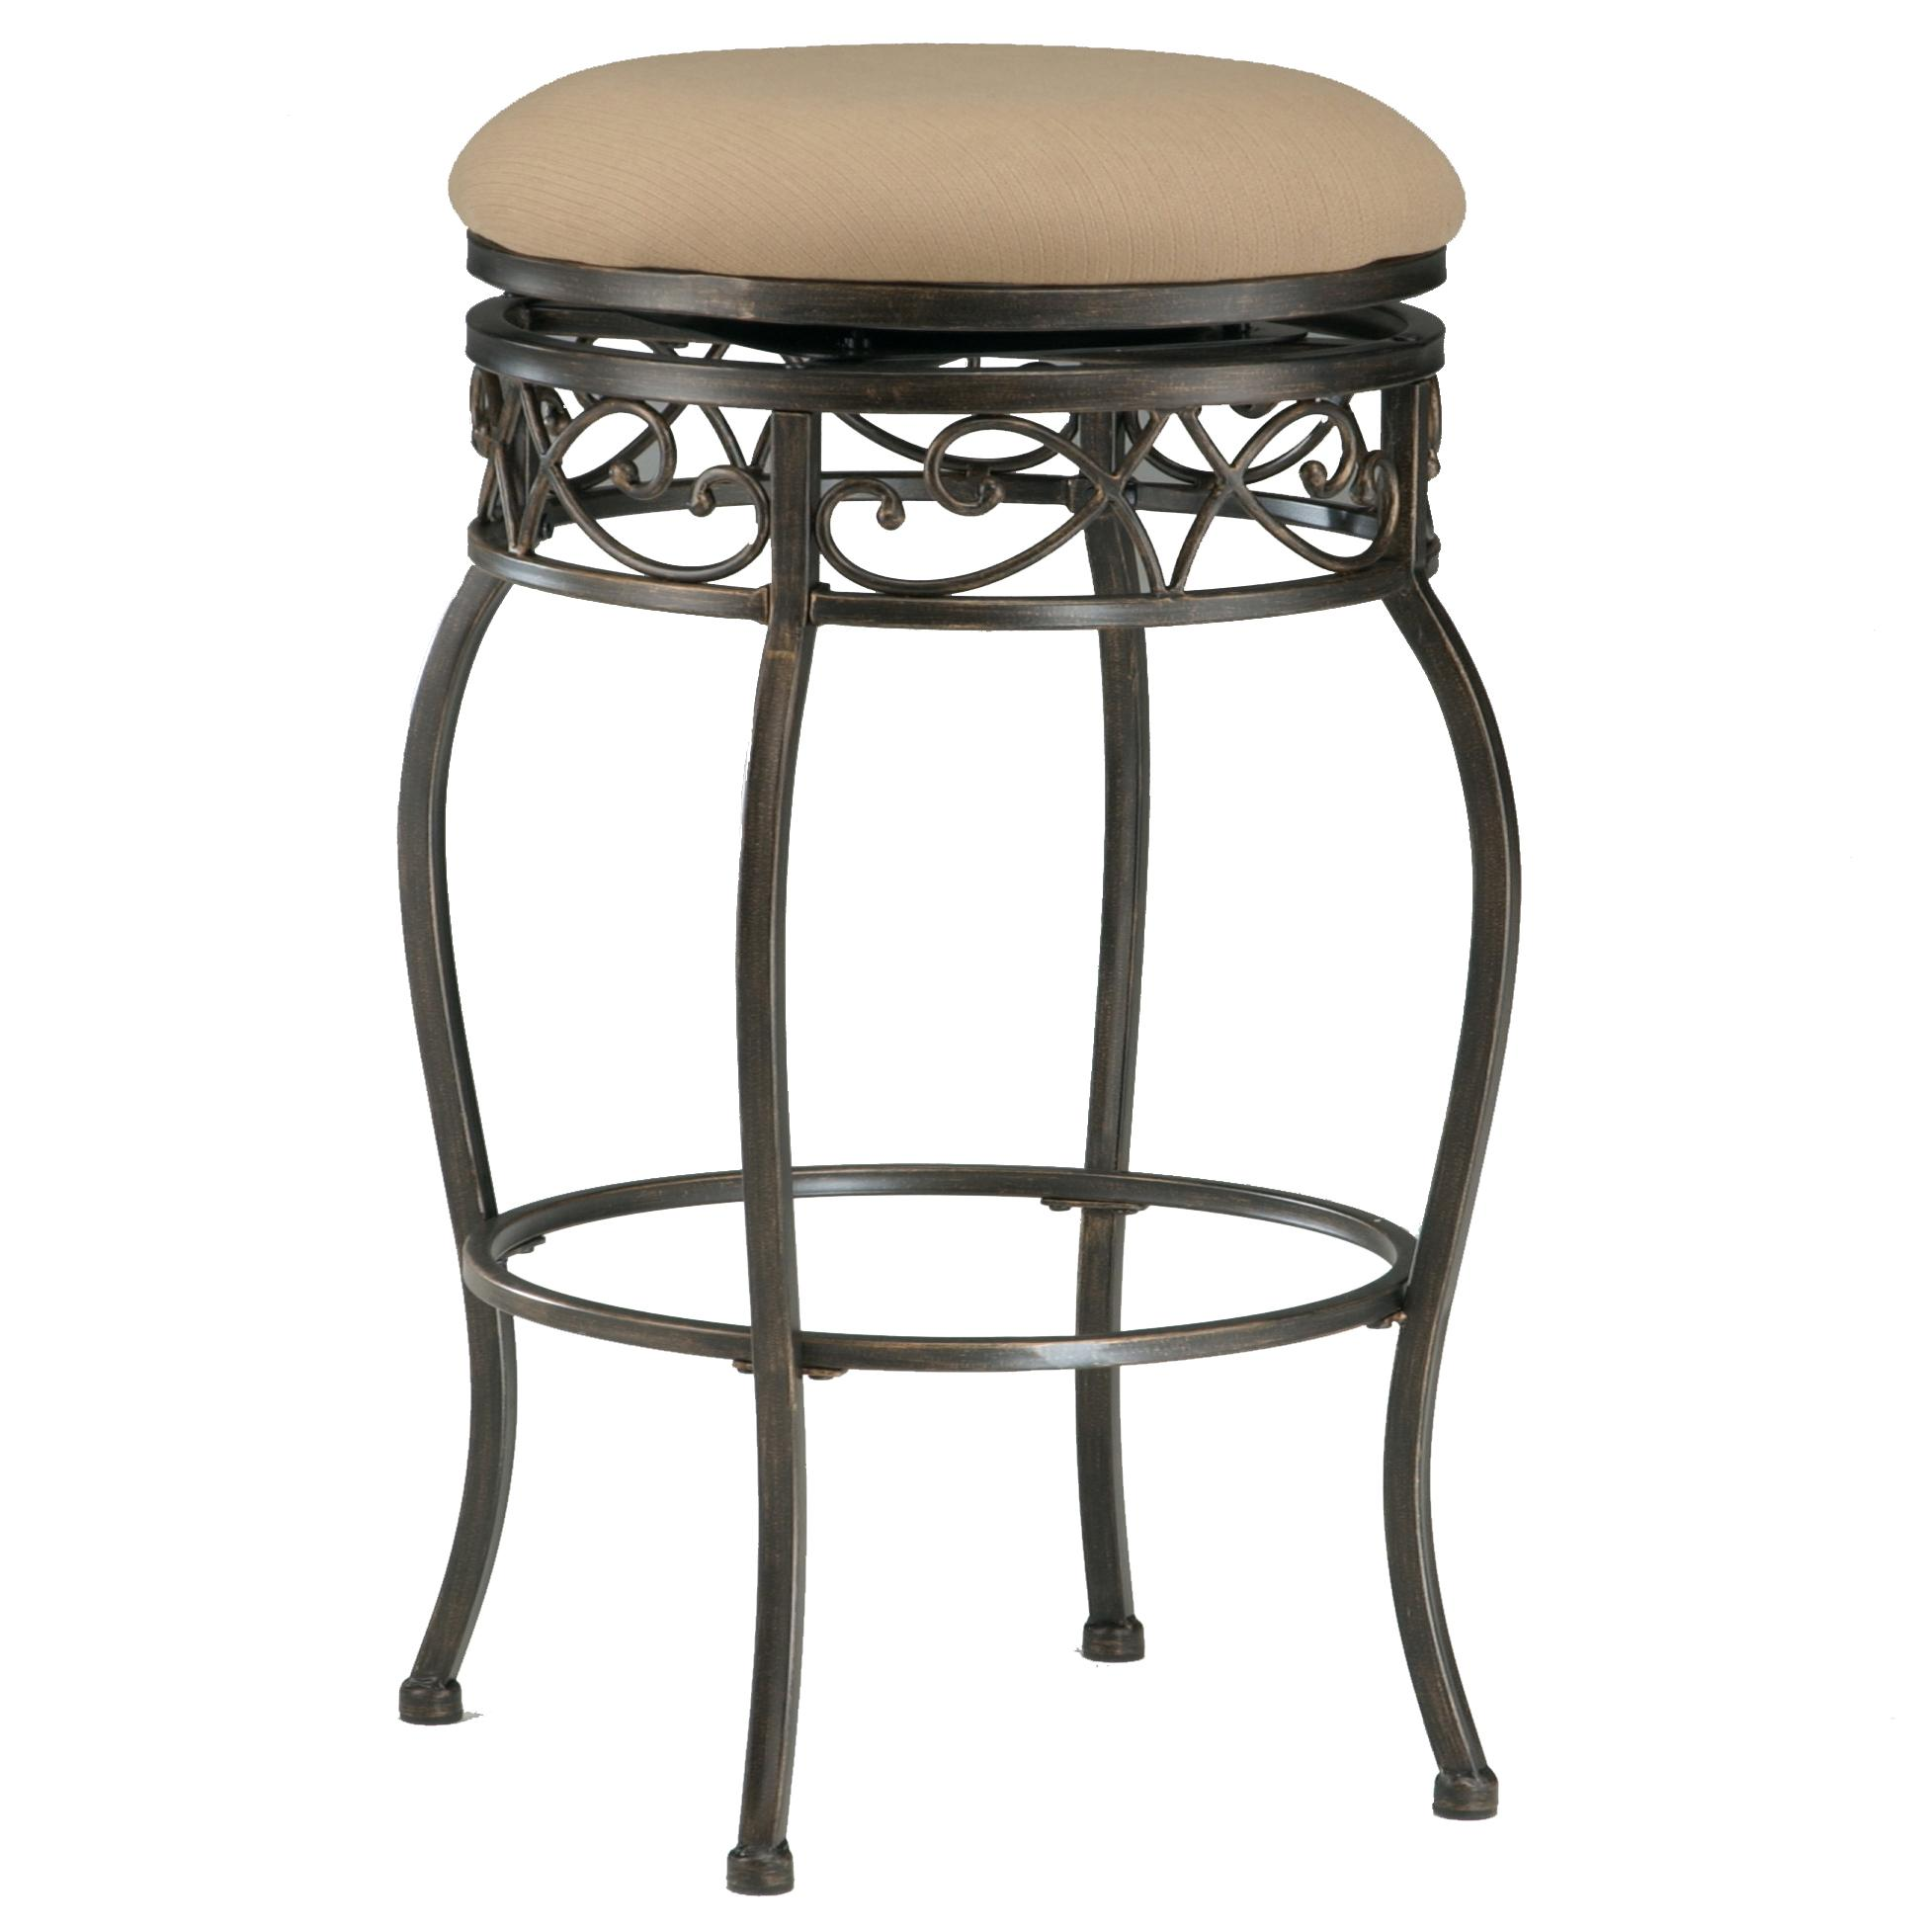 Hillsdale backless bar stools 4336 827 26 backless for Backless bar stools